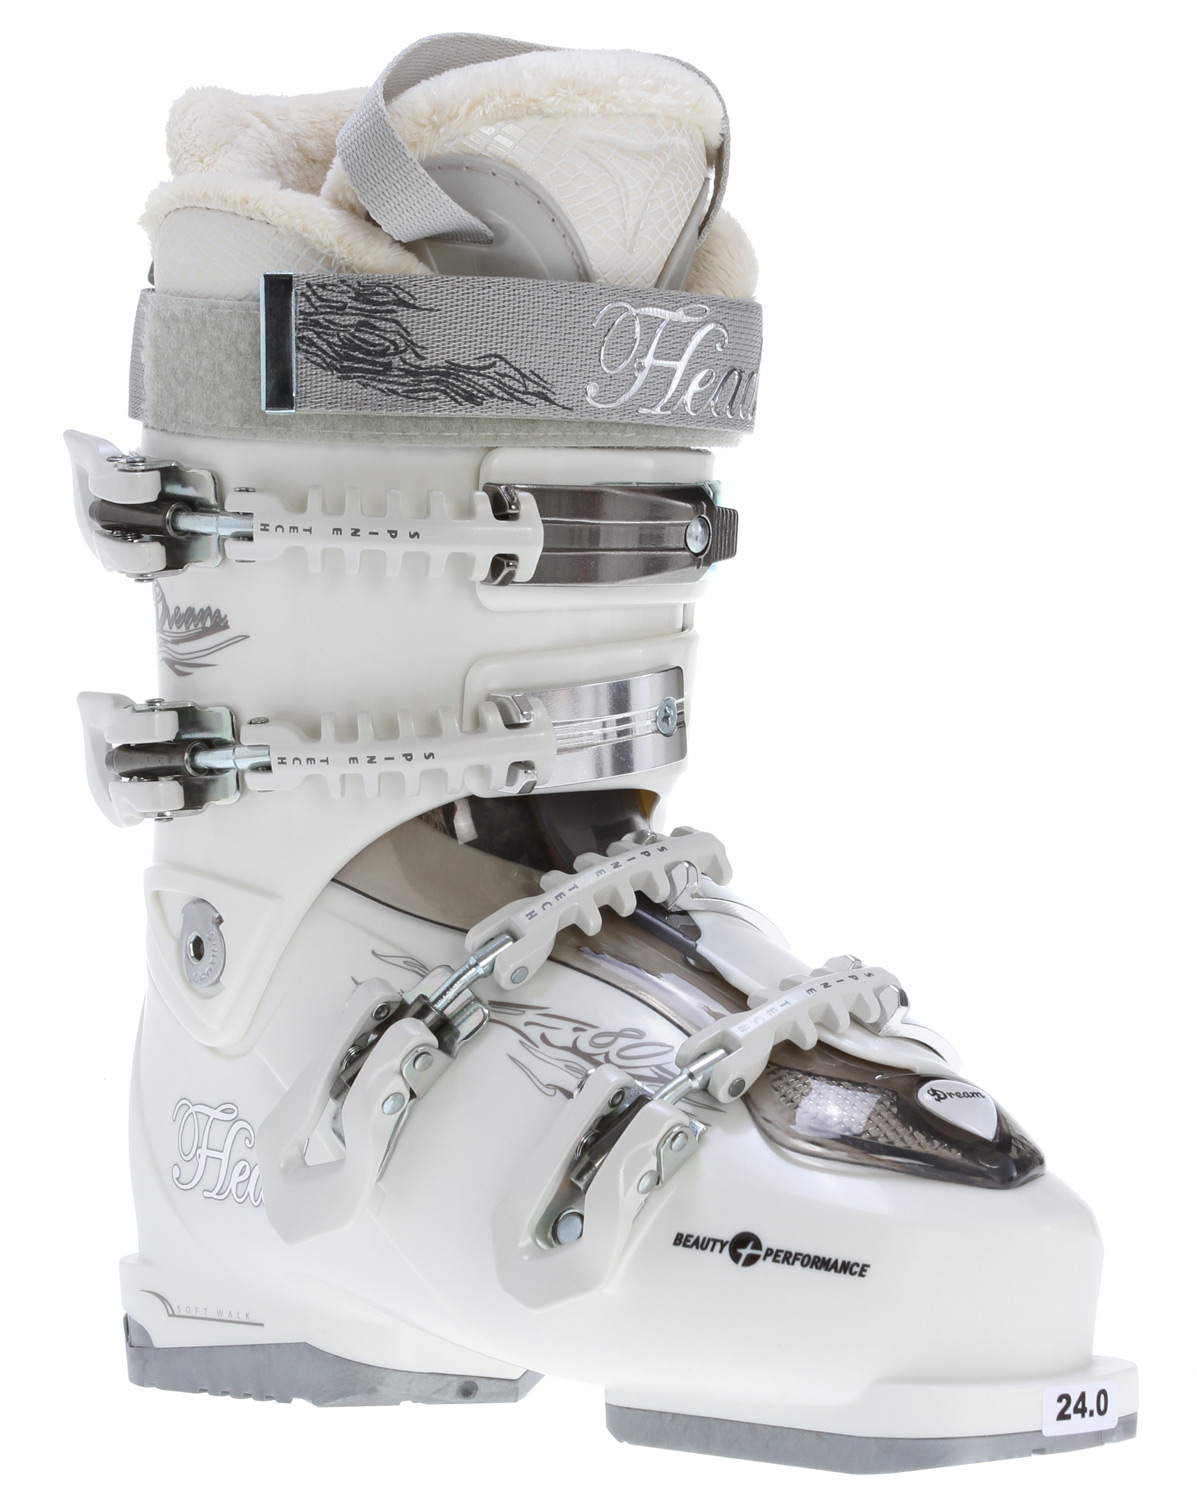 Ski The Head Dream 80 Mya Ski Boots are a dream to walk on. These boots are not only warm and comfortable but their easy entry macro ratchet and adjustable arch support make them a pleasure to put on and use. Everything about the head dream ski boots screams warm without being bulky thanks to their fleece lining, thermaluxe tips, and a heatfit liner. Nothing is more important than staying warm when out and around in the snow so stay cozy and keep your toes happy with the Head Dream 80.Key Features of the Head Dream 80 Mya Ski Boots Pearl: Level: Advance SL Shell Women's Heat Fit Liner Fleece Lining and Thermaluxe Tips Self Shaping Footbed with Sanitized 30mm Velcro Strap Prepared for Heating System 4 Micro Adjustable Spine Tech Magnesium Buckles 1 Super Macro ratchet Easy Entry instep ratchet Adjustable Wedge Arch support Double Canting Double Adjustable Profile Women's Specific Supportive Heel option Flex Index: 80 - $226.95